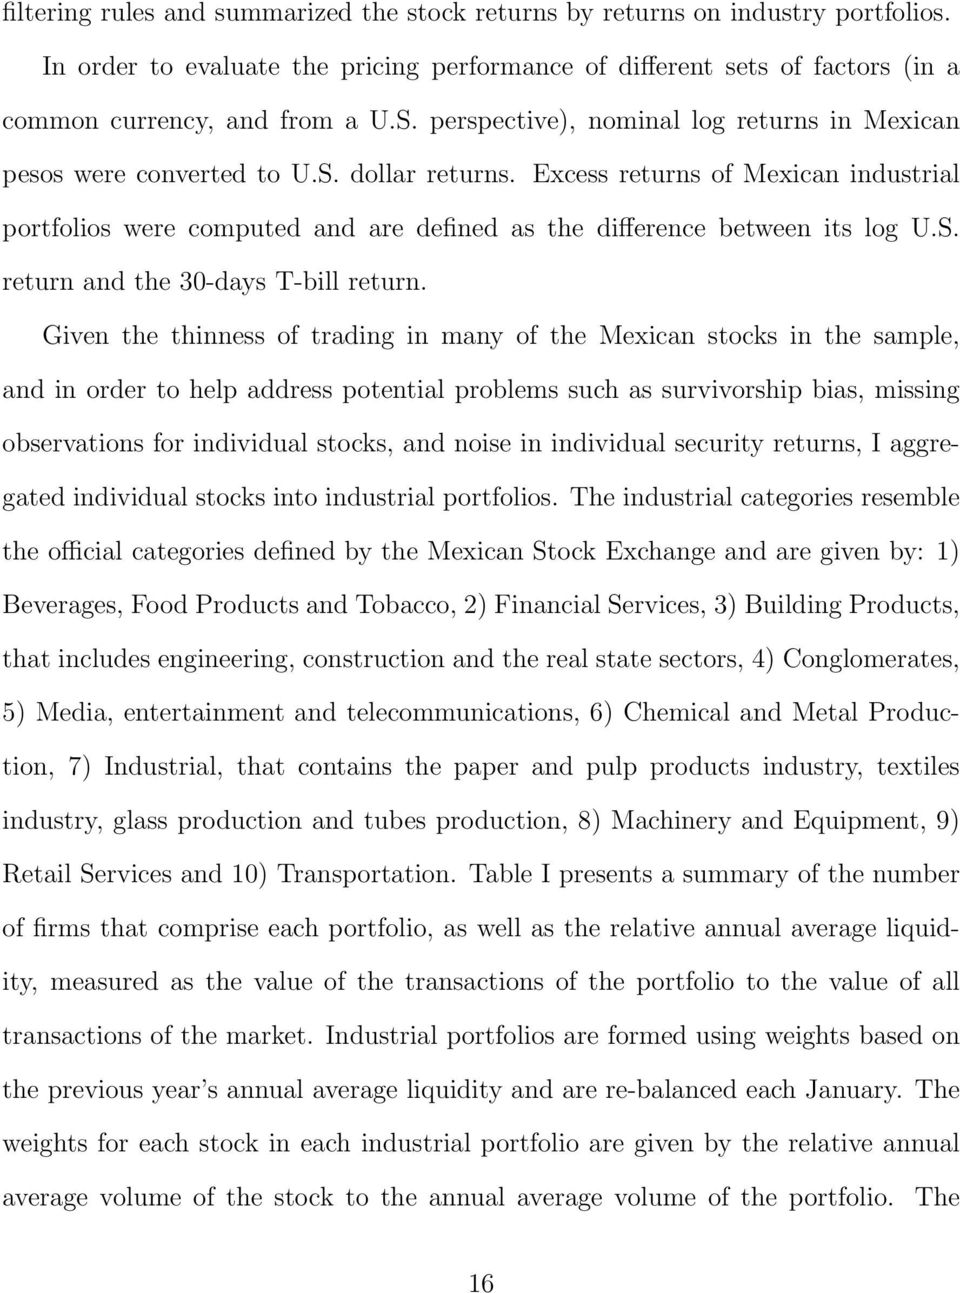 Excess returns of Mexican industrial portfolios were computed and are defined as the difference between its log U.S. return and the 30-days T-bill return.